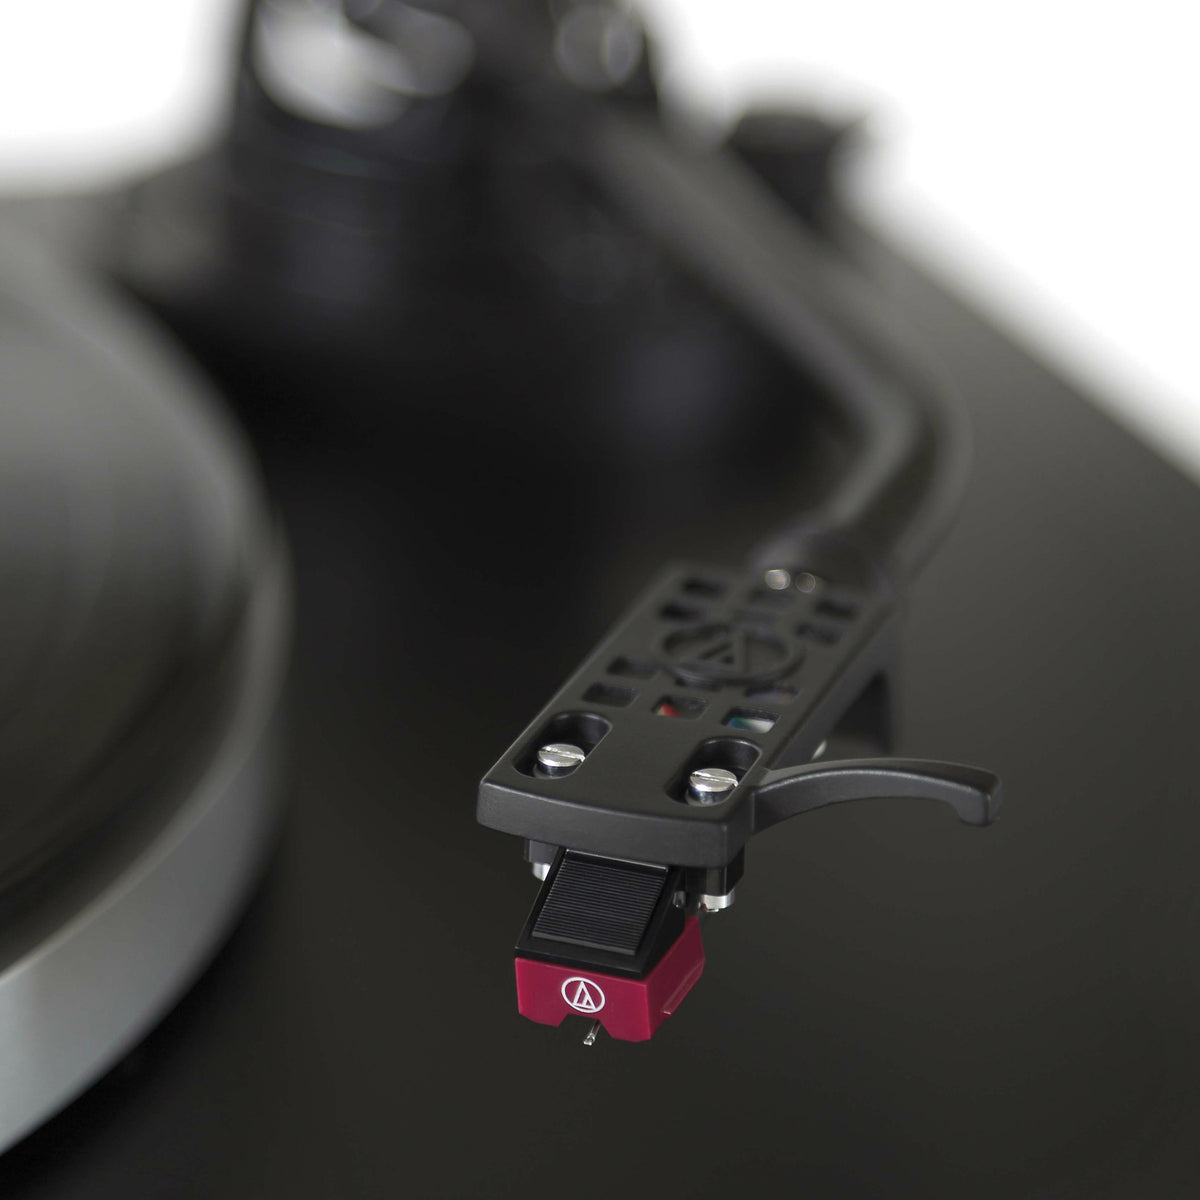 Audio-Technica: AT-LP5 Direct Drive USB Turntable